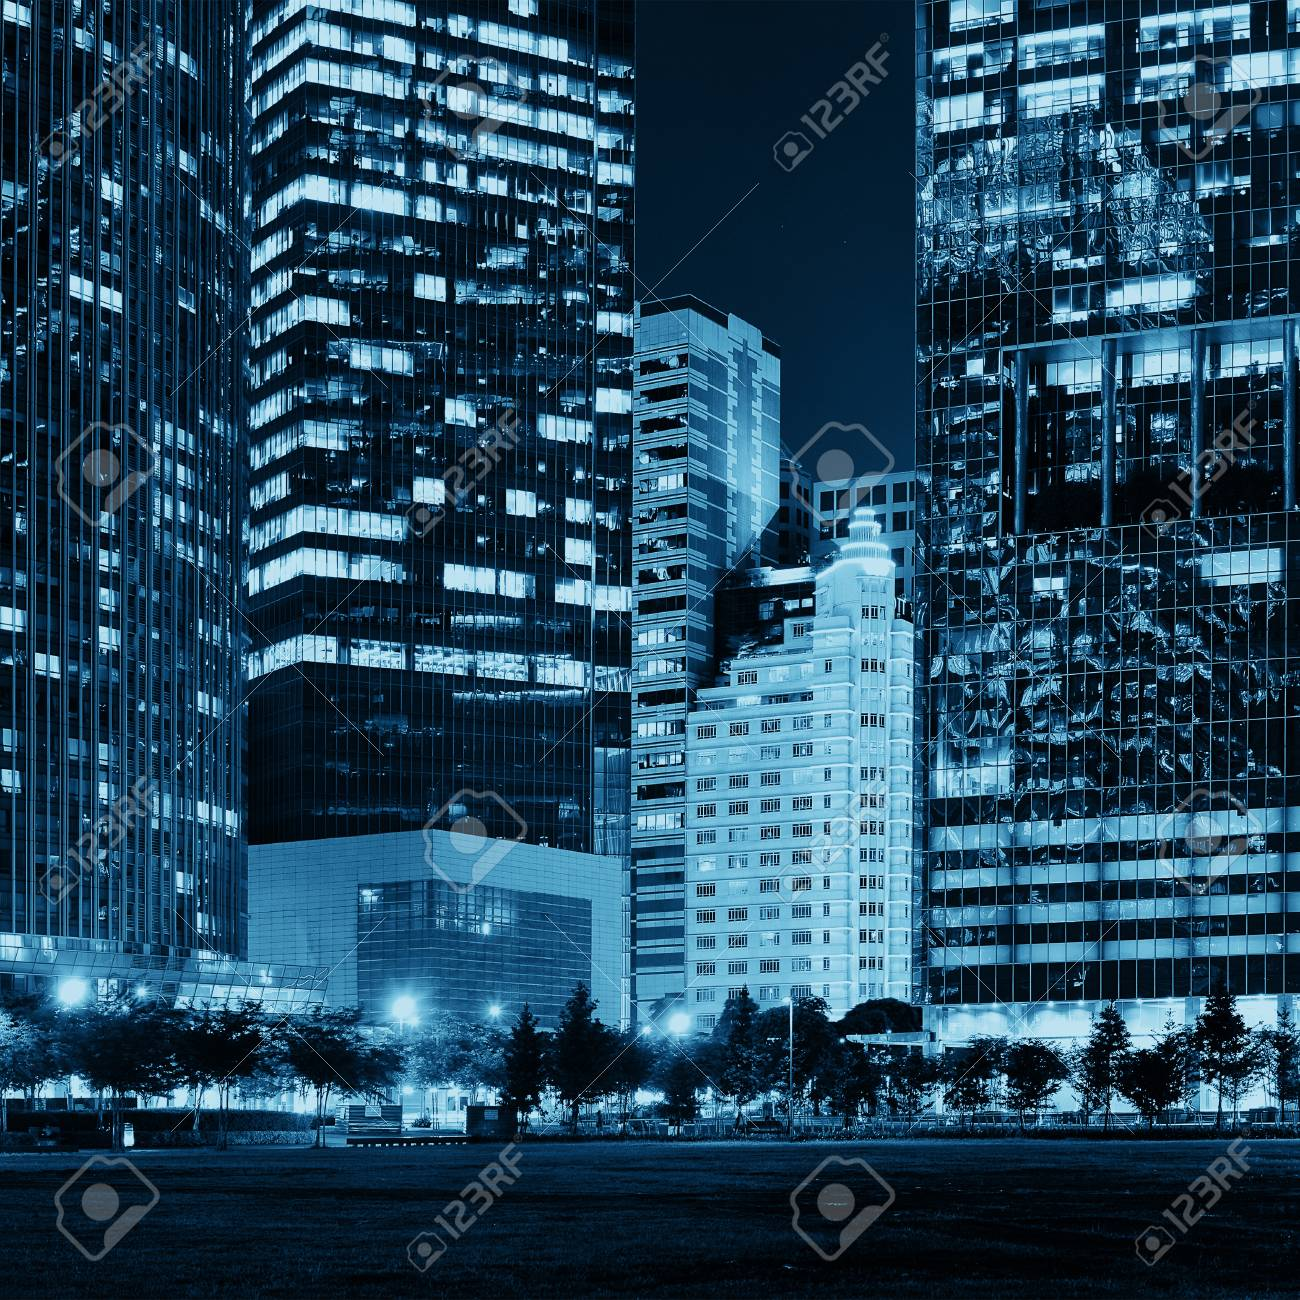 Urban Architecture Skyscrapers Background In Singapore Stock Photo 1300x1300